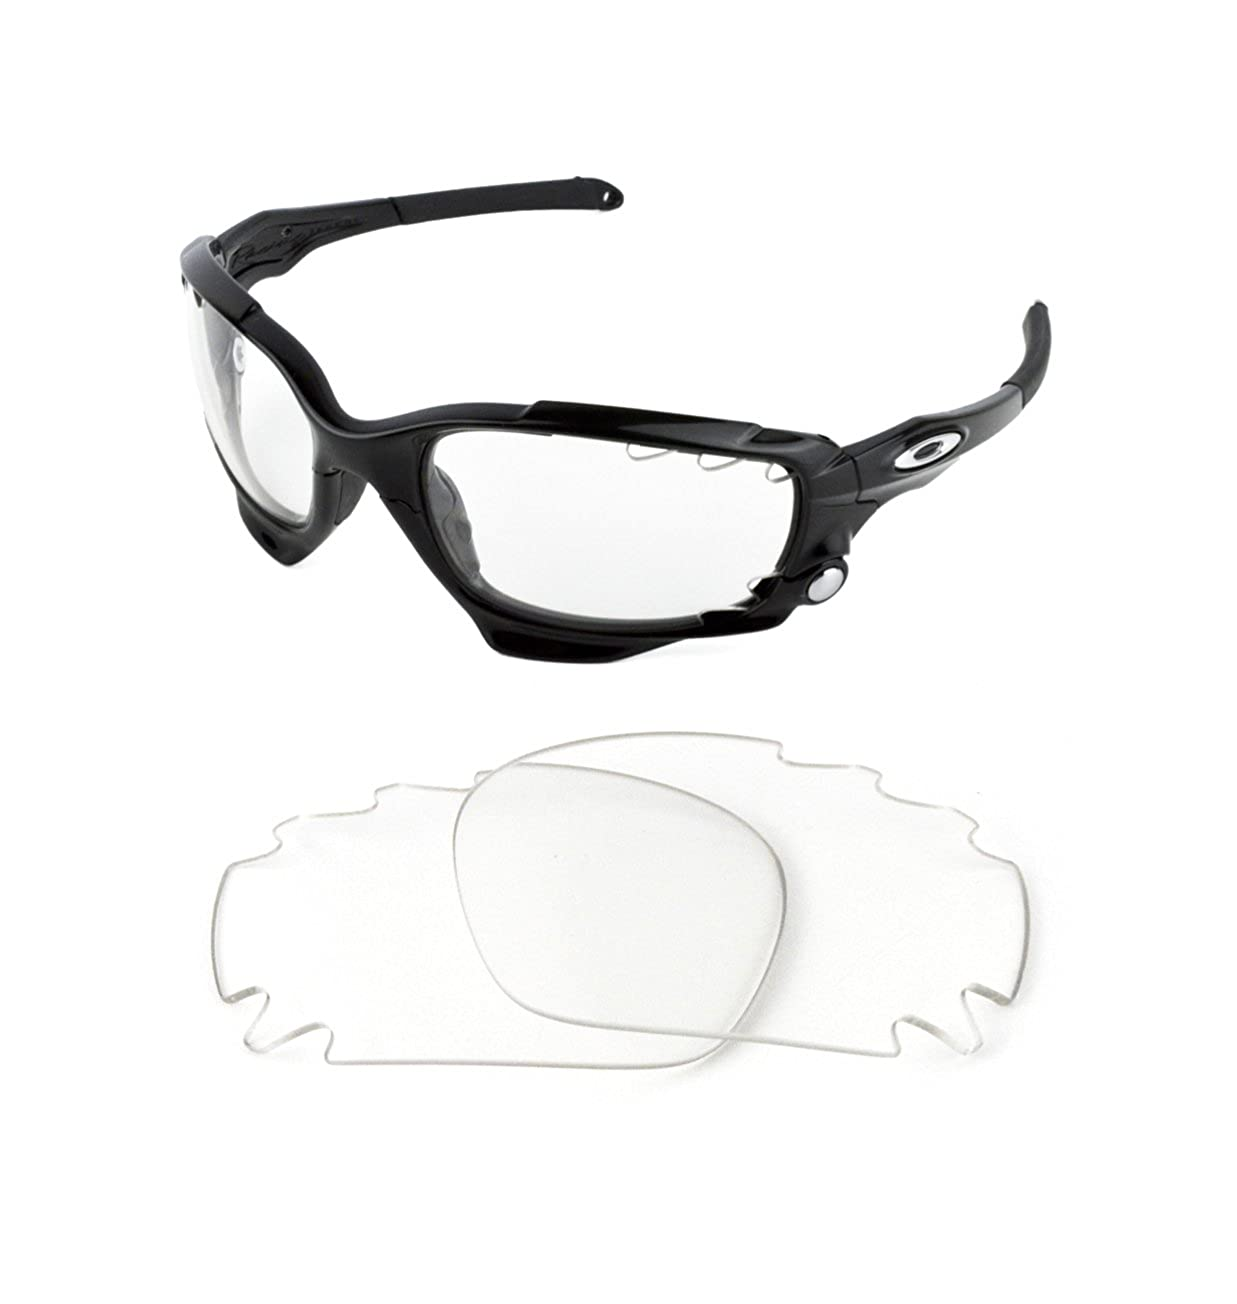 2c0234e9b58 NEW REPLACEMENT CLEAR LENS FOR OAKLEY RACING JACKET SUNGLASSES   Amazon.co.uk  Clothing